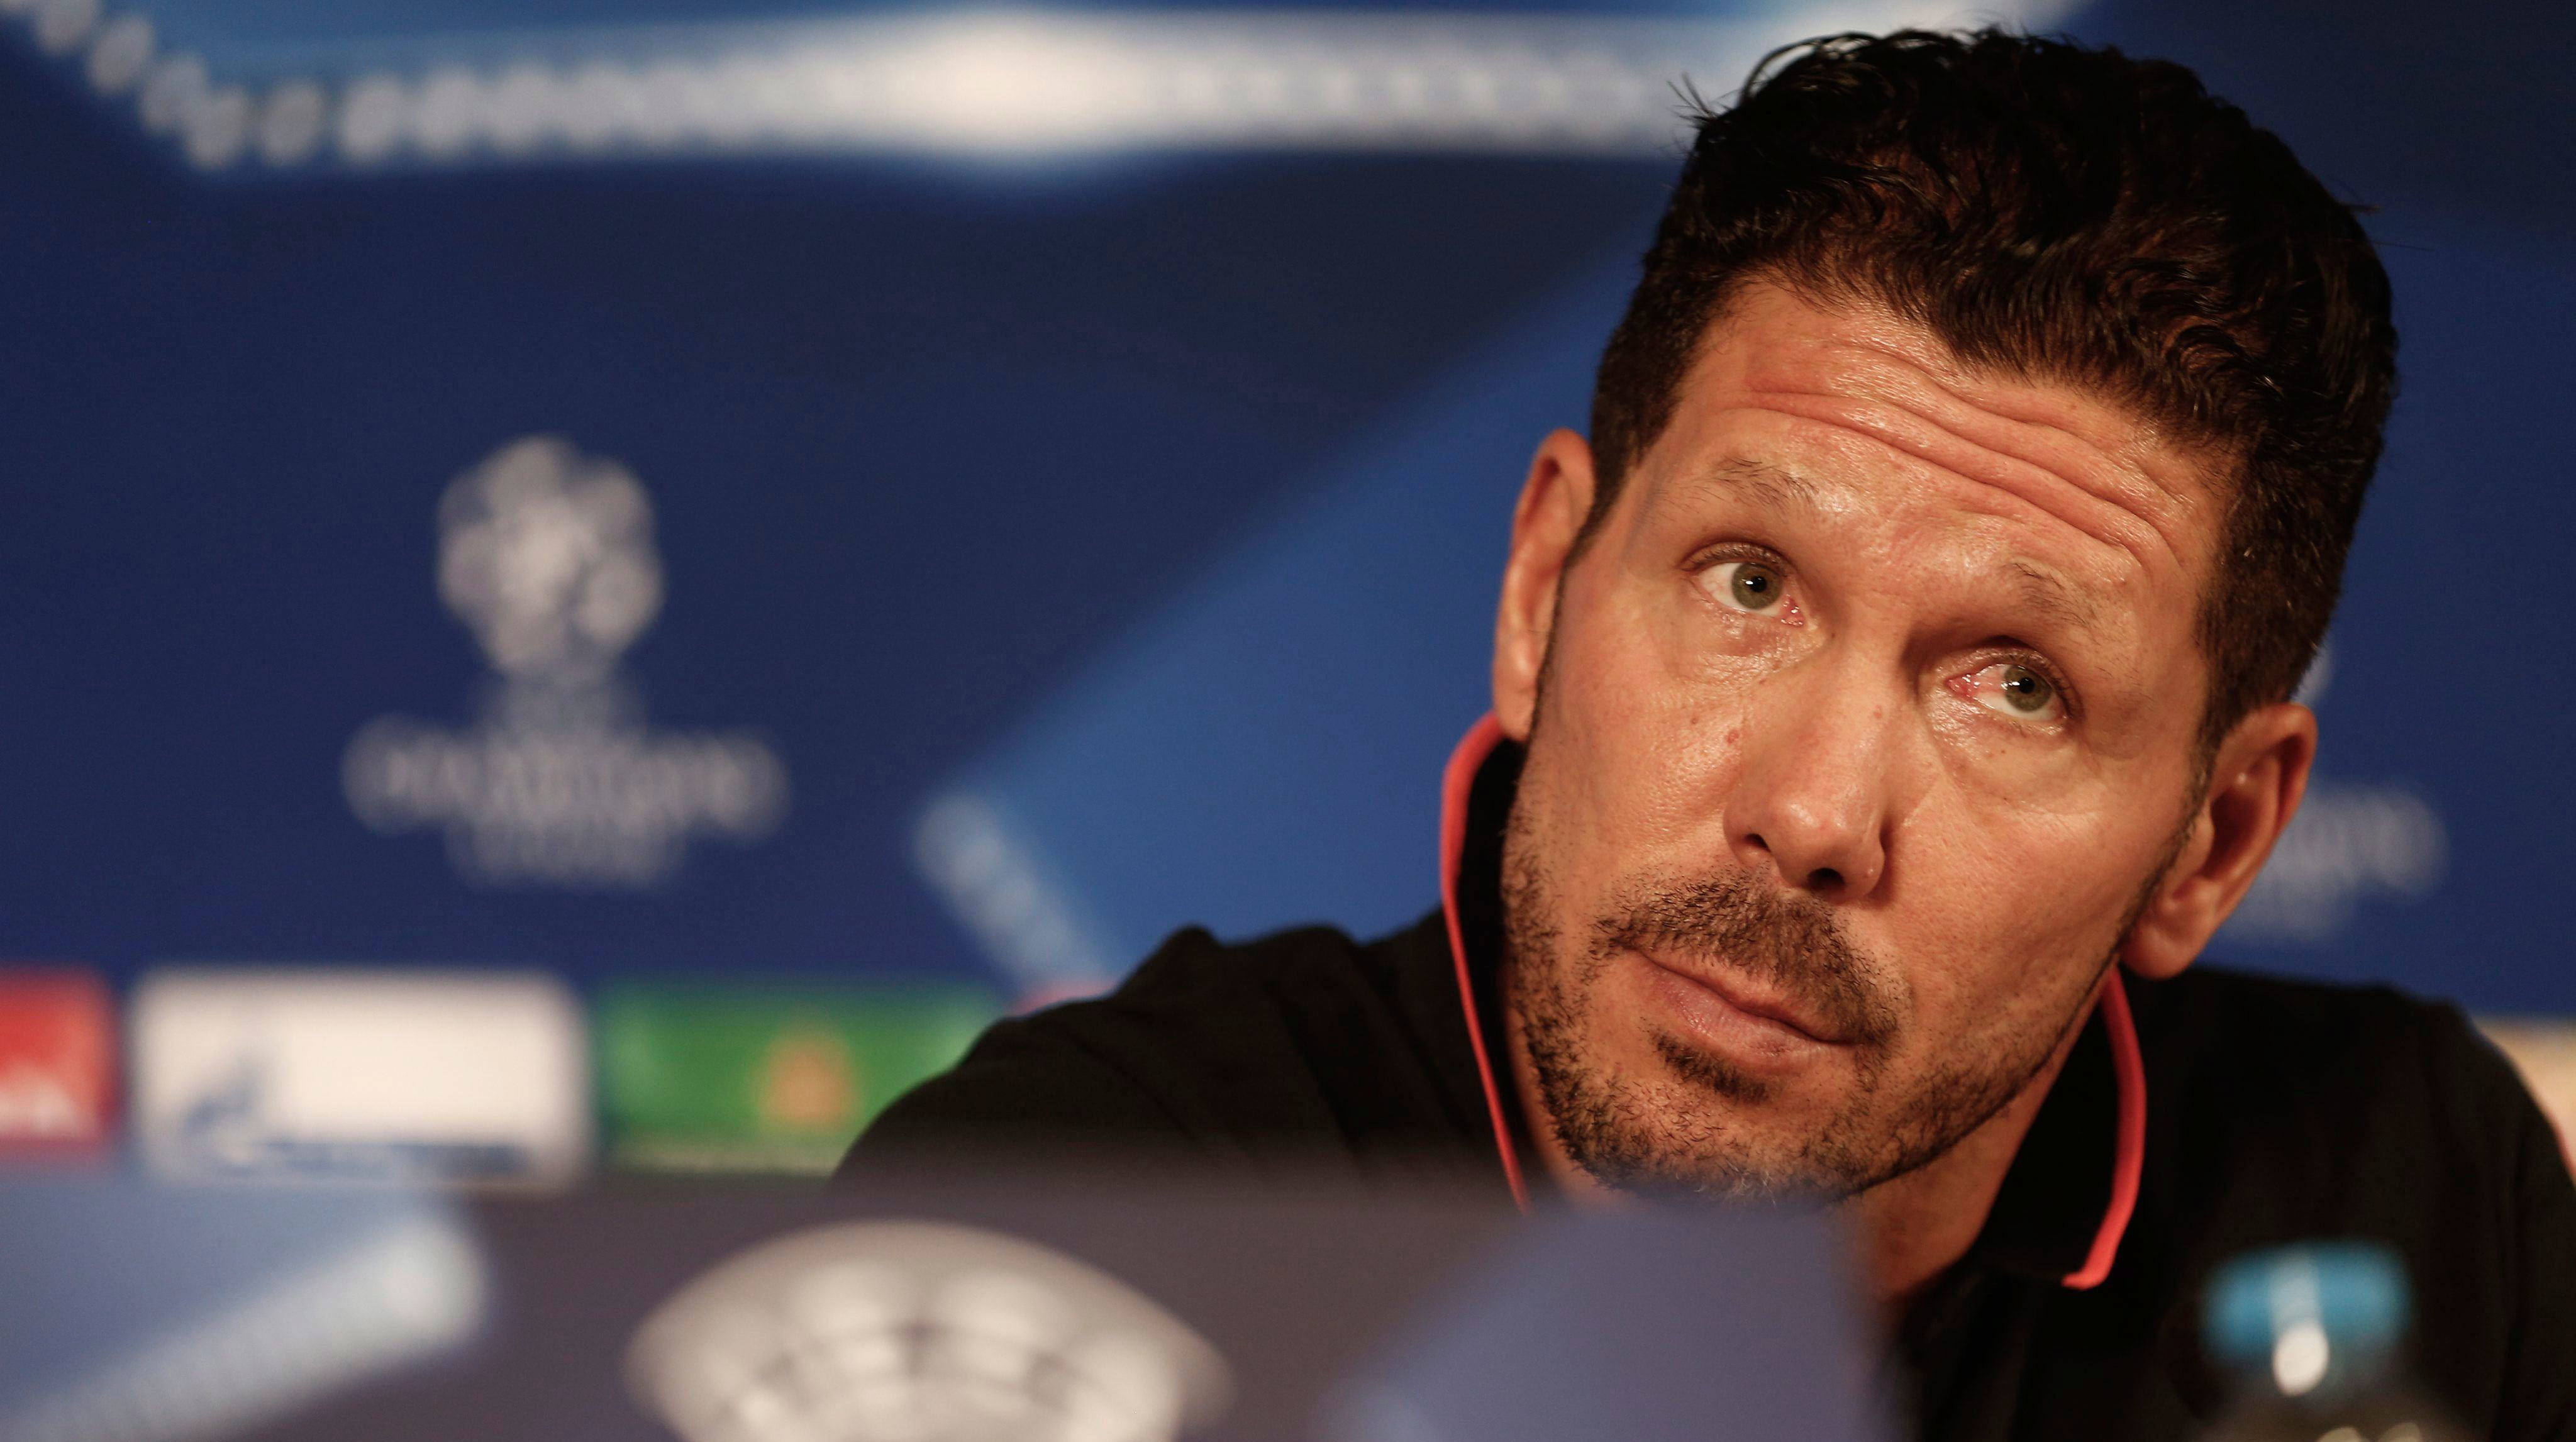 Diego Simeone es entrenador del At. Madrid. Efe.